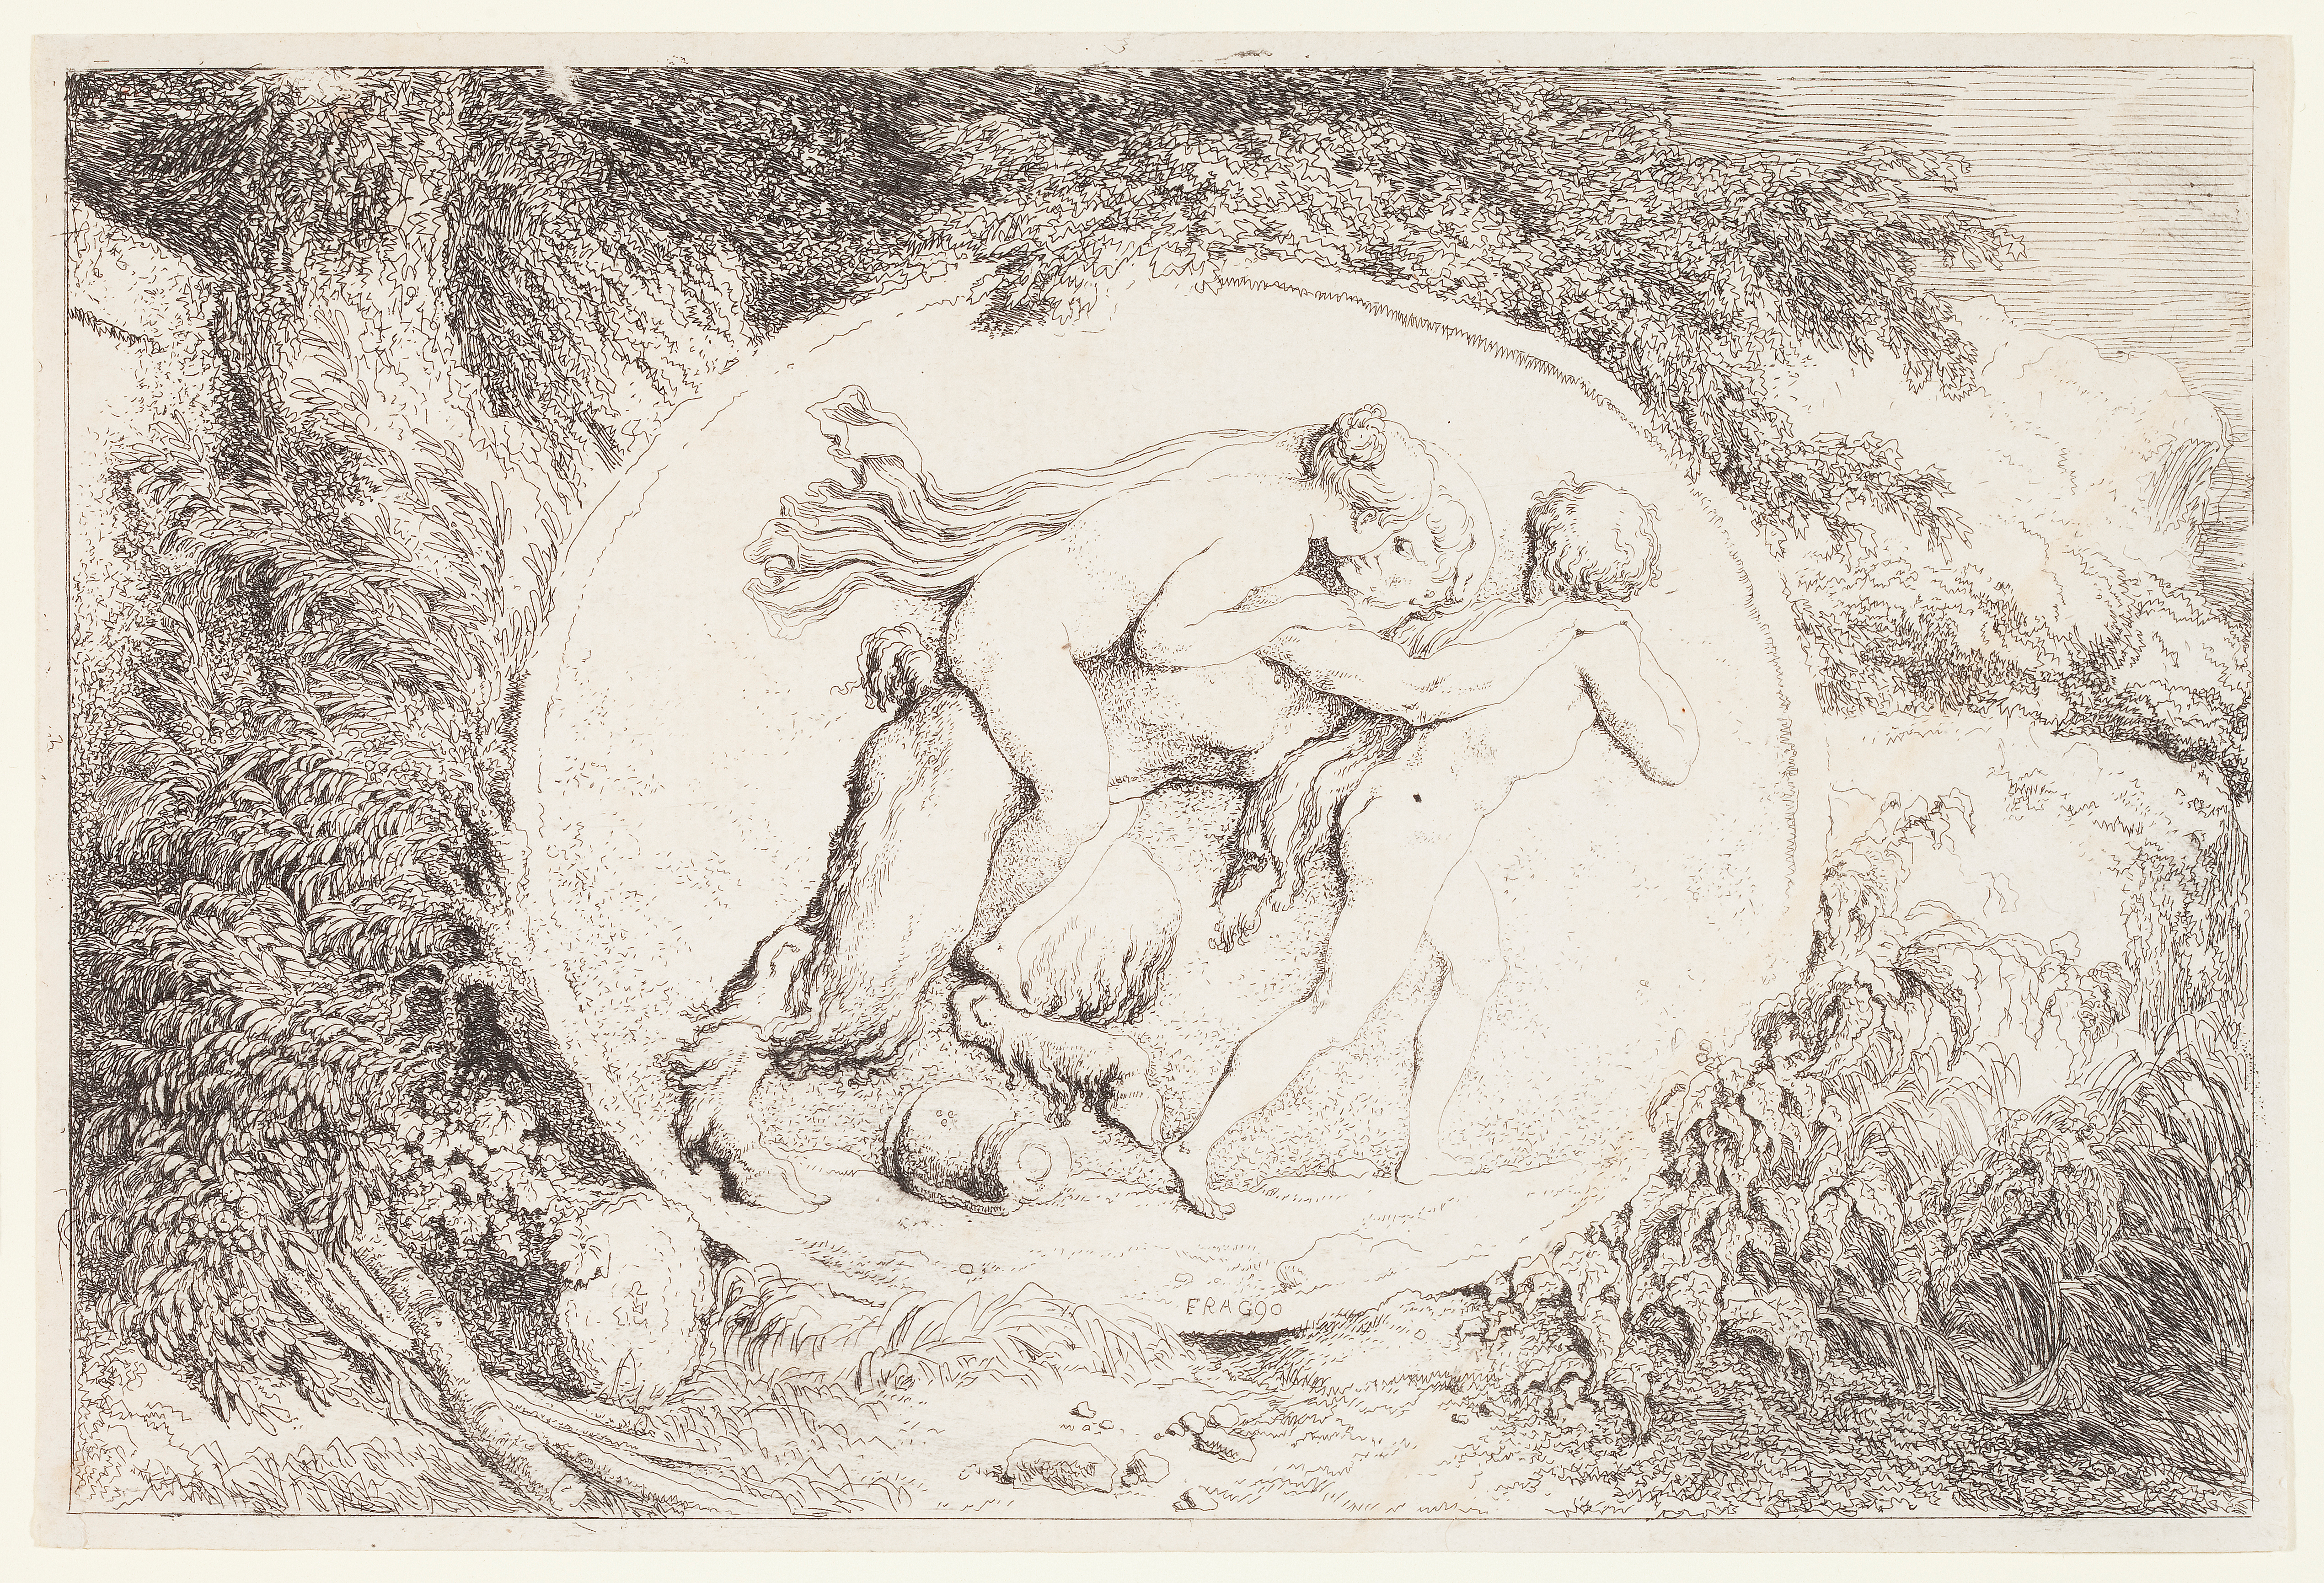 Jean-Honoré Fragonard (French, 1732–1806), Nymph Astride a Satyr, from the series Bacchanals, 1763. Etching. Plate and sheet: 5 9/16 × 8 5/16 in. (14.13 × 21.11 cm). Milwaukee Art Museum, Gift of the DASS Fund M2010.65.3. Photo credit: John R. Glembin.